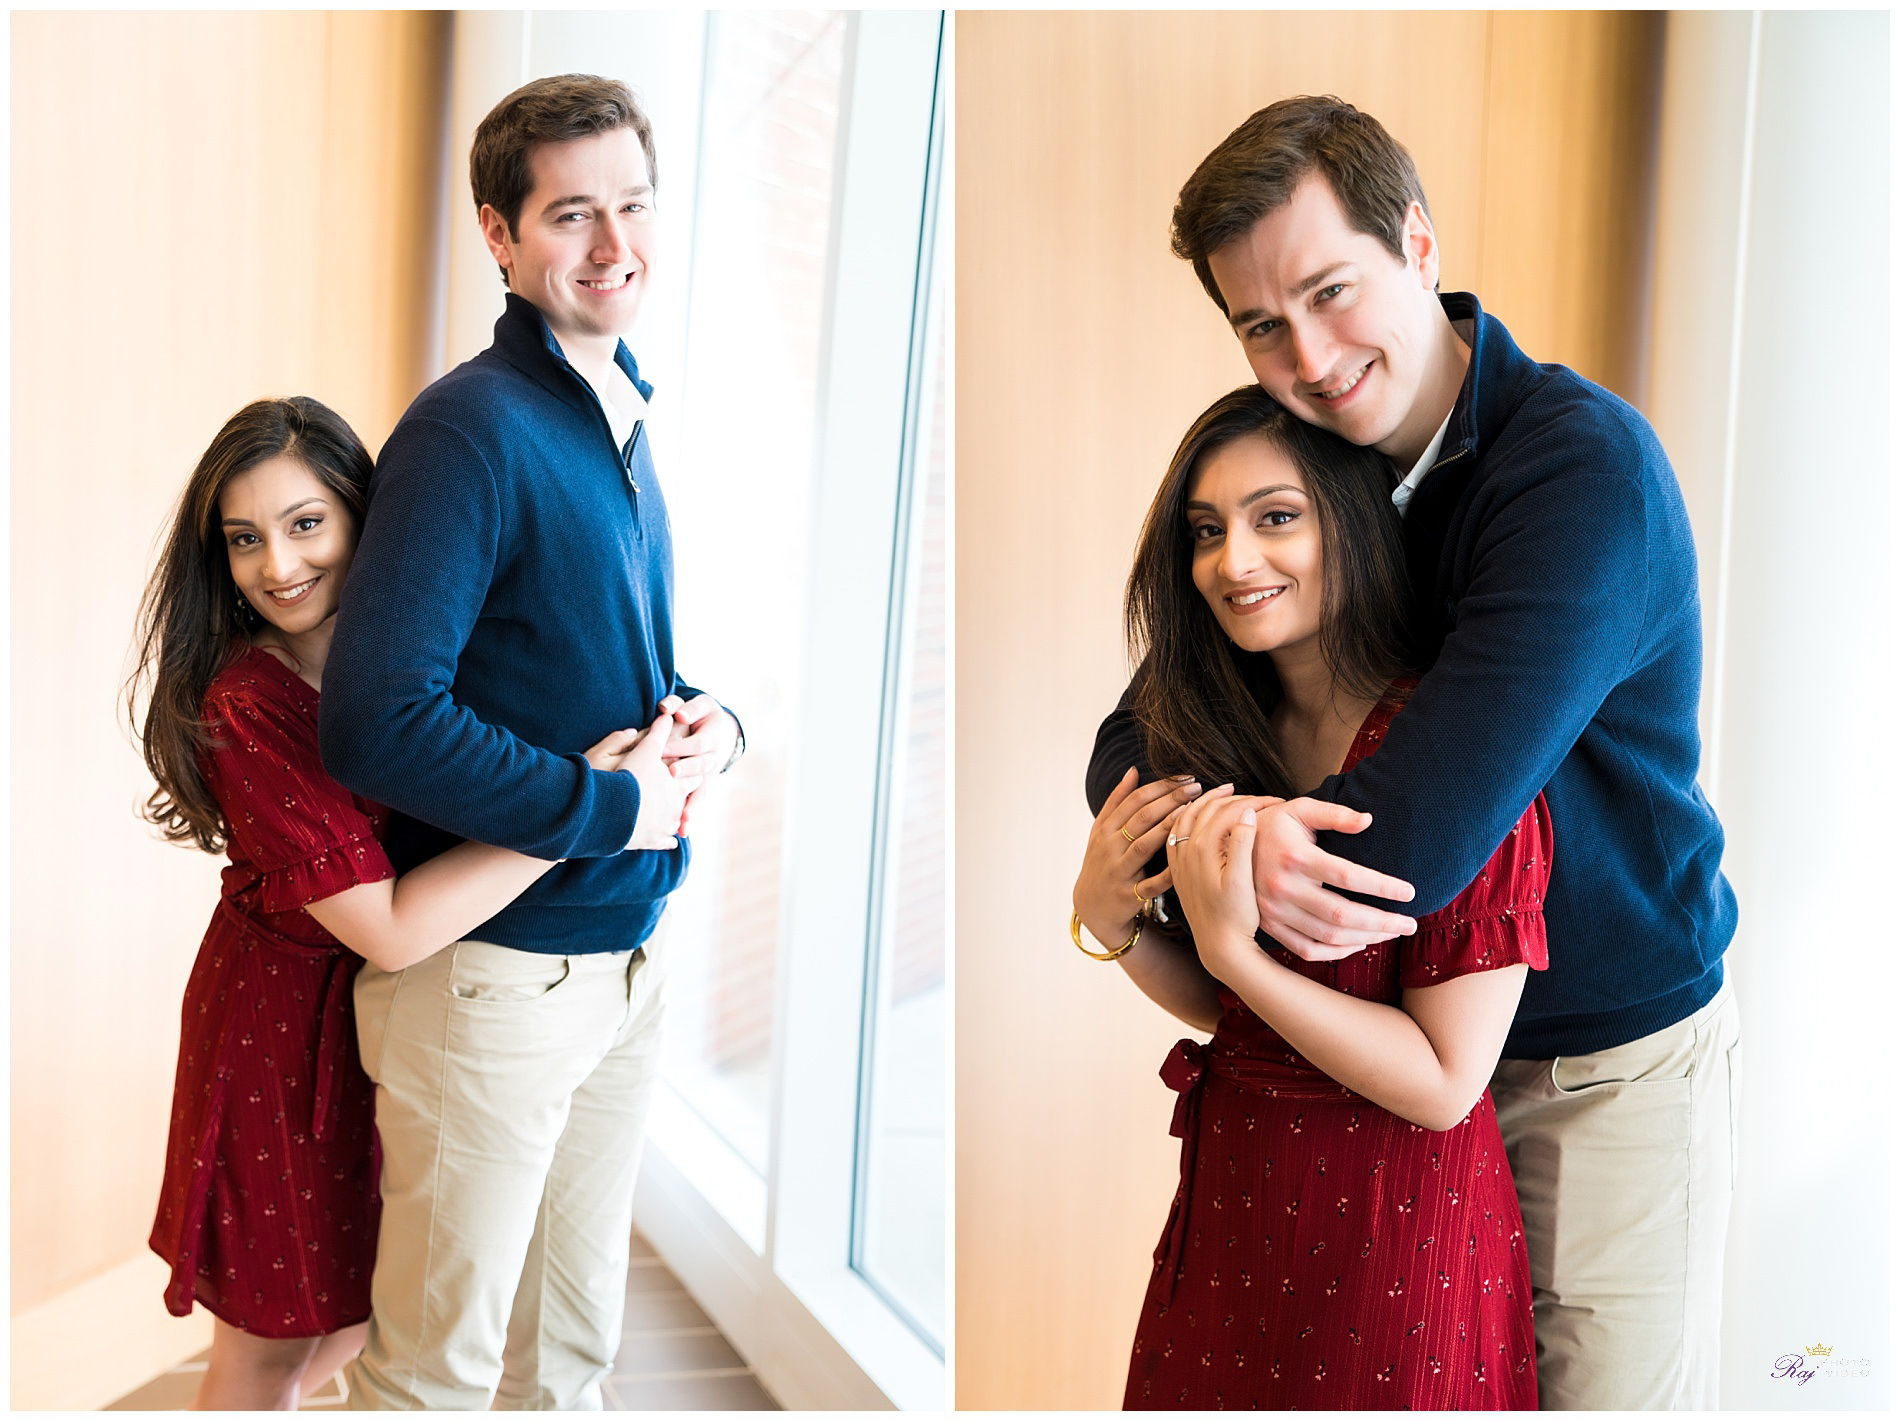 The-College-of-New-Jersey-Engagement-Shoot-Prerna-Kevin5.jpg